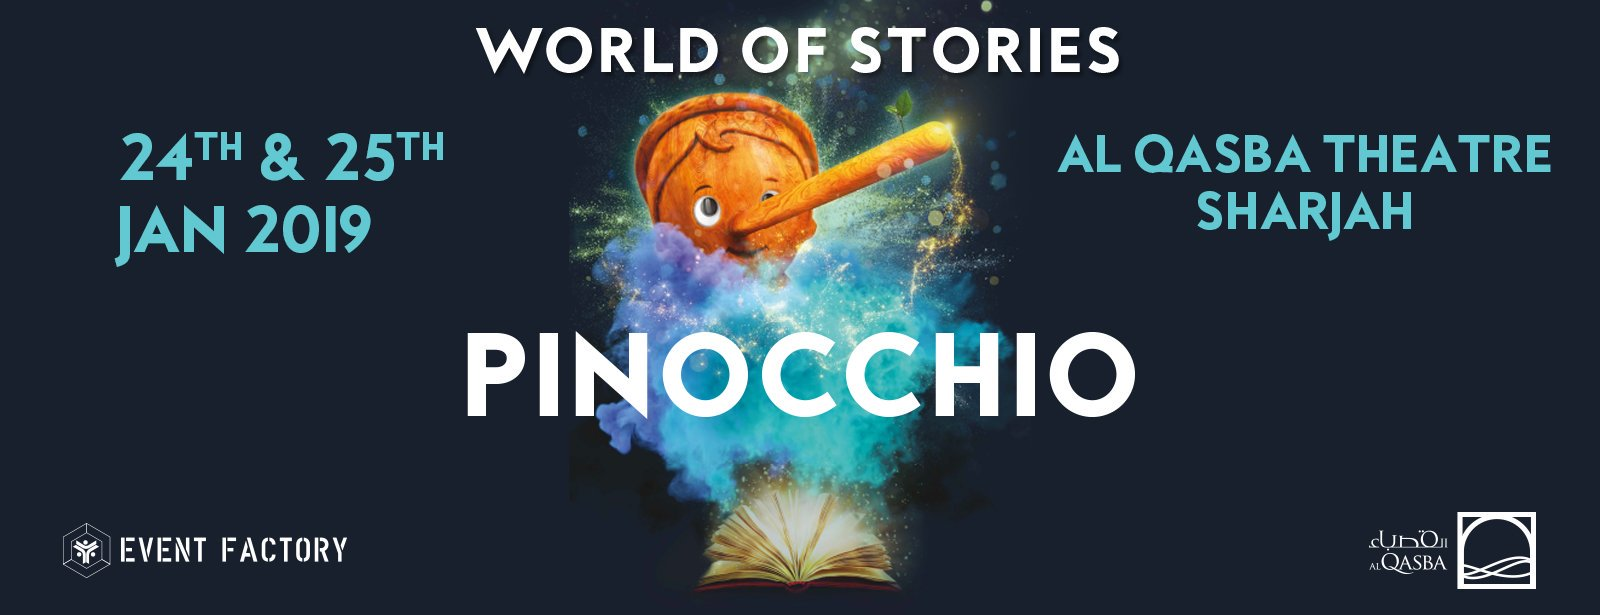 Pinocchio musical - Coming Soon in UAE